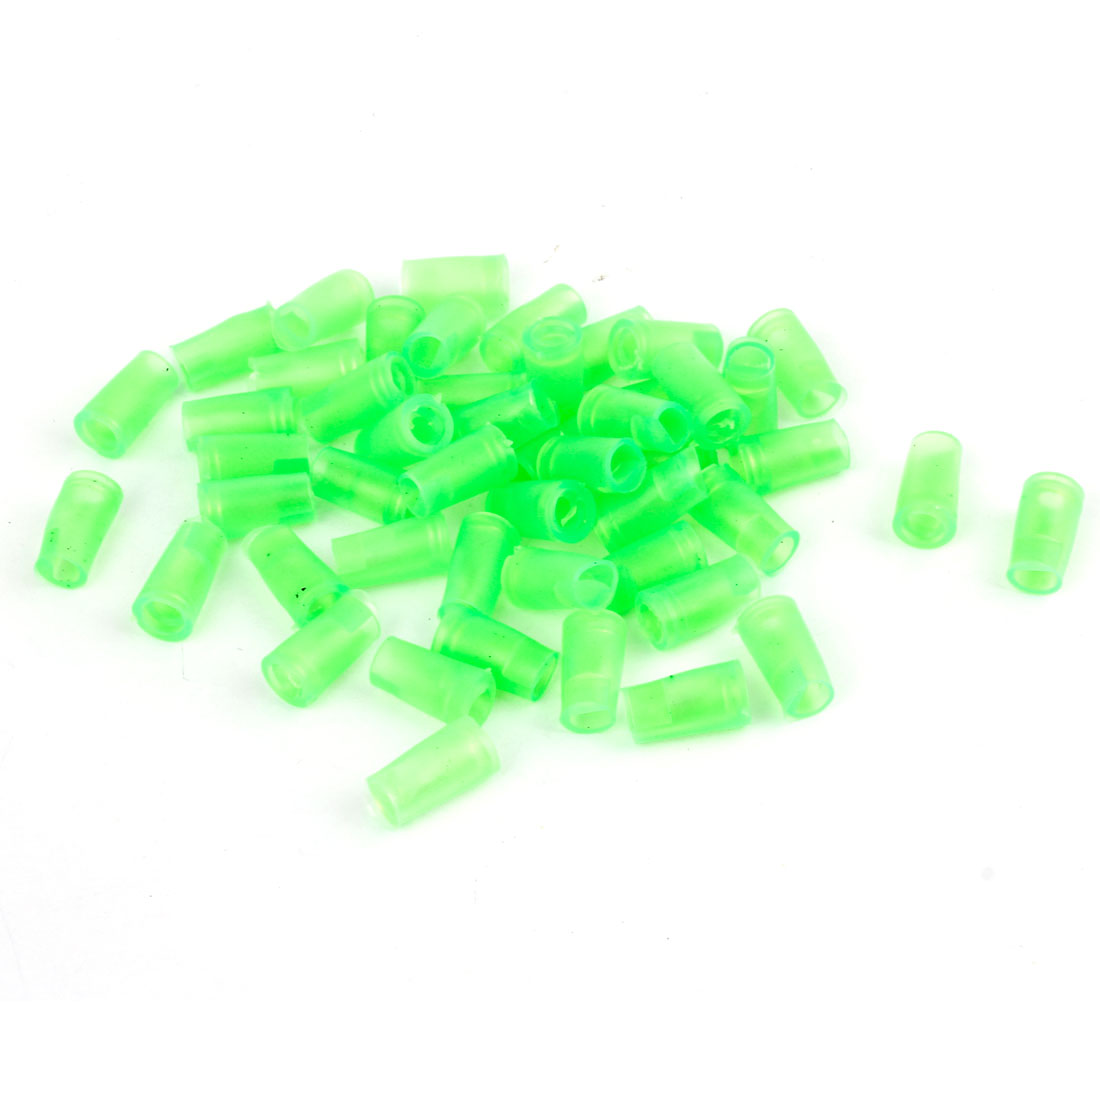 50 Pcs Green 6mm Dia PVC Crimp Terminal Cover Sleeves 10mm Long for Motorcycle